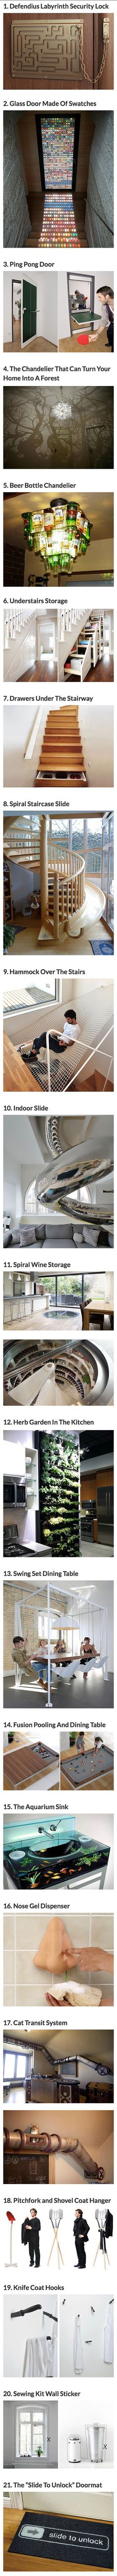 Here are some cool and creative home ideas that think outside the box.